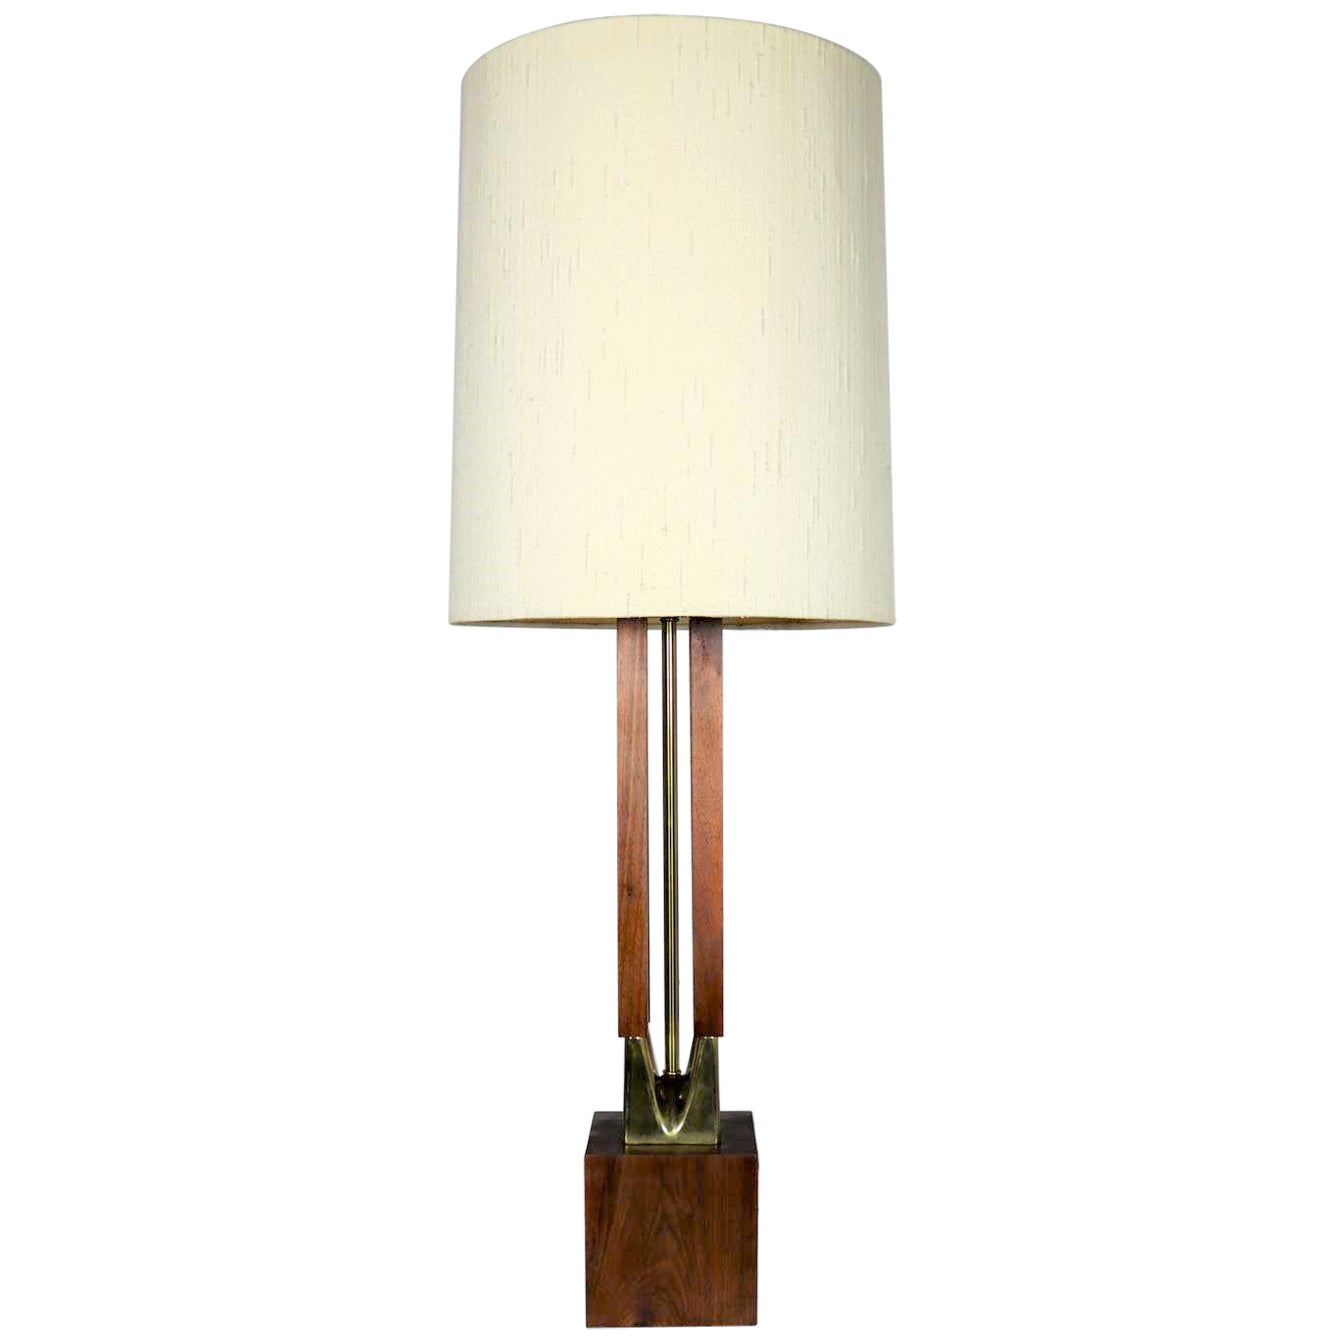 Mid-Century Modern Large Scale Walnut & Brass Lamp Attributed to Laurel Lamp Mfg